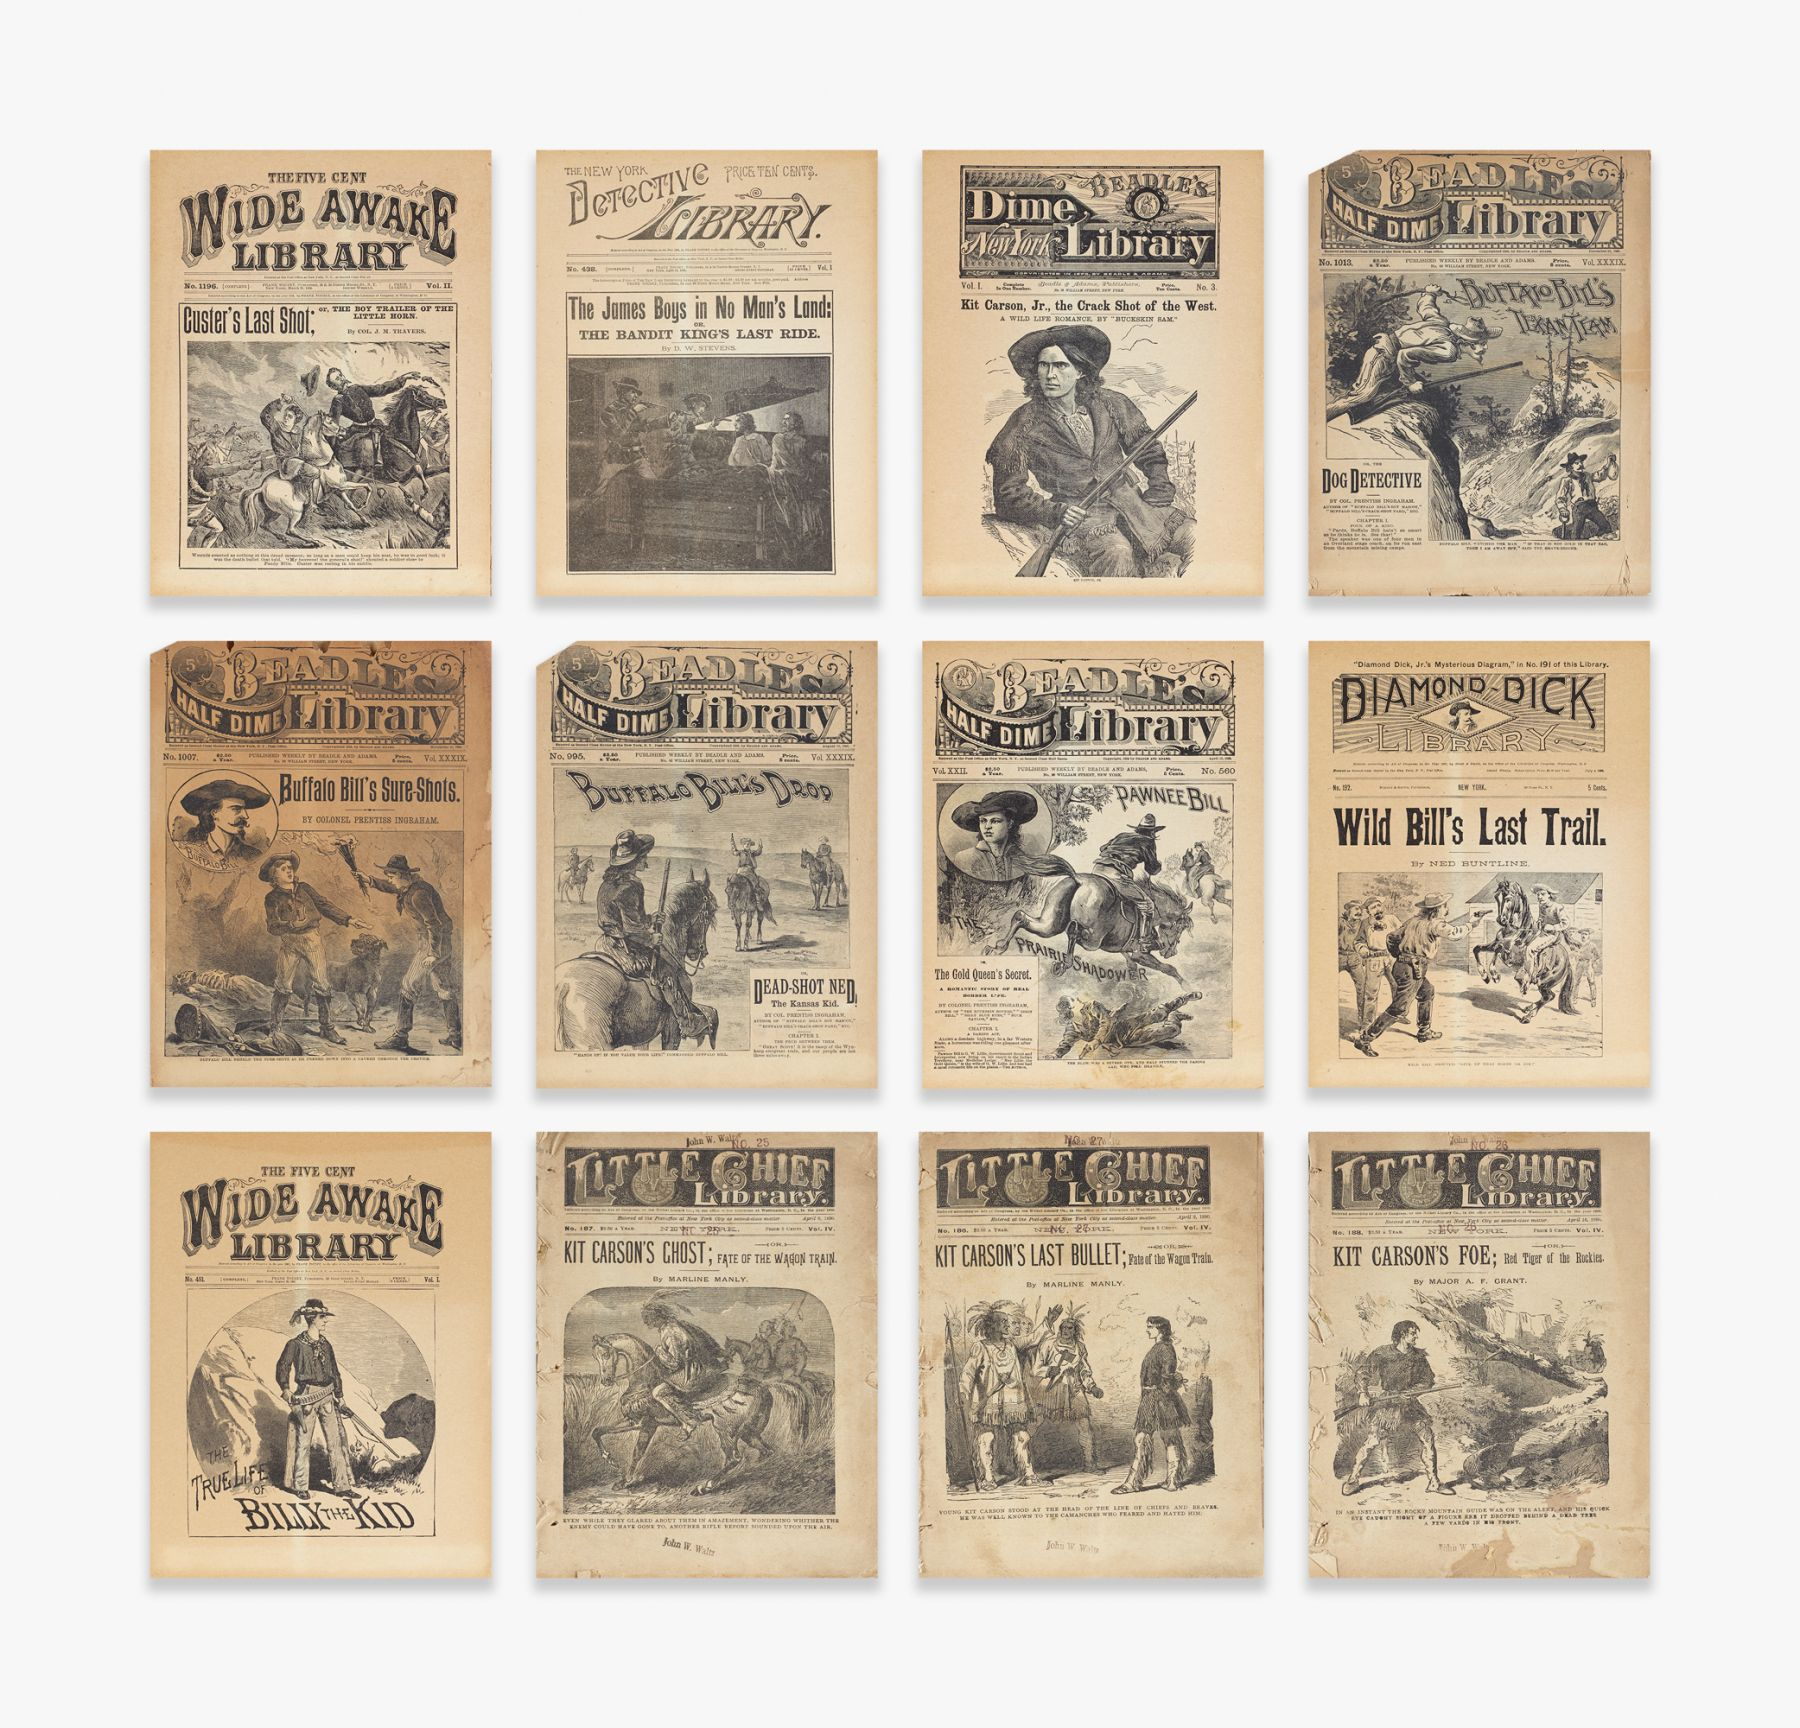 12 Items from the Dime Novels and Penny Dreadfuls Collection